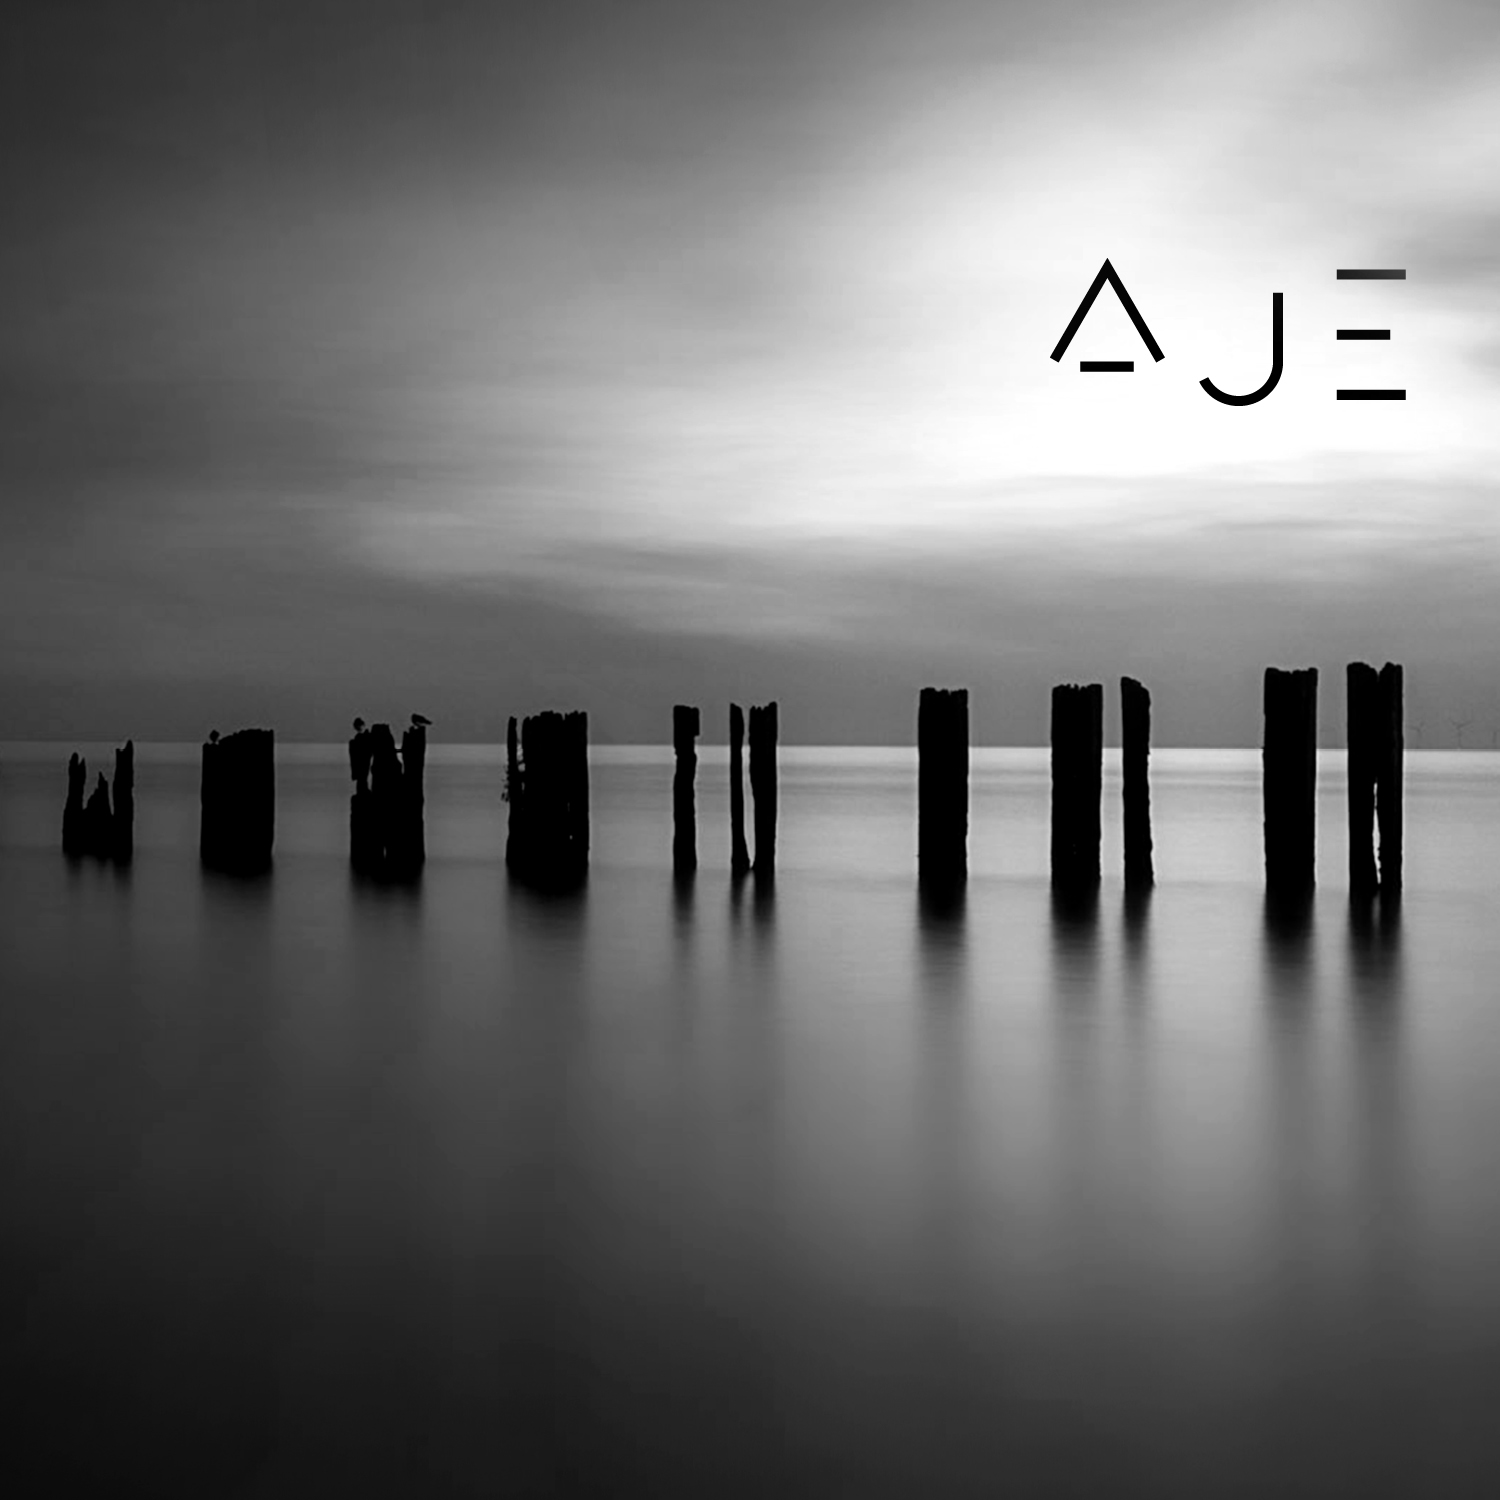 AJE - 15 piece orchestra loved by Cafe Del Mar, Late Night Tales and Hospital Records - remixed by Lomea and Dylan Colby. Lomea's emotive soundscapes explore beauty and darker cinematic electronic moods. Dylan Colby uplifting dnd from the Hospital Records producer.